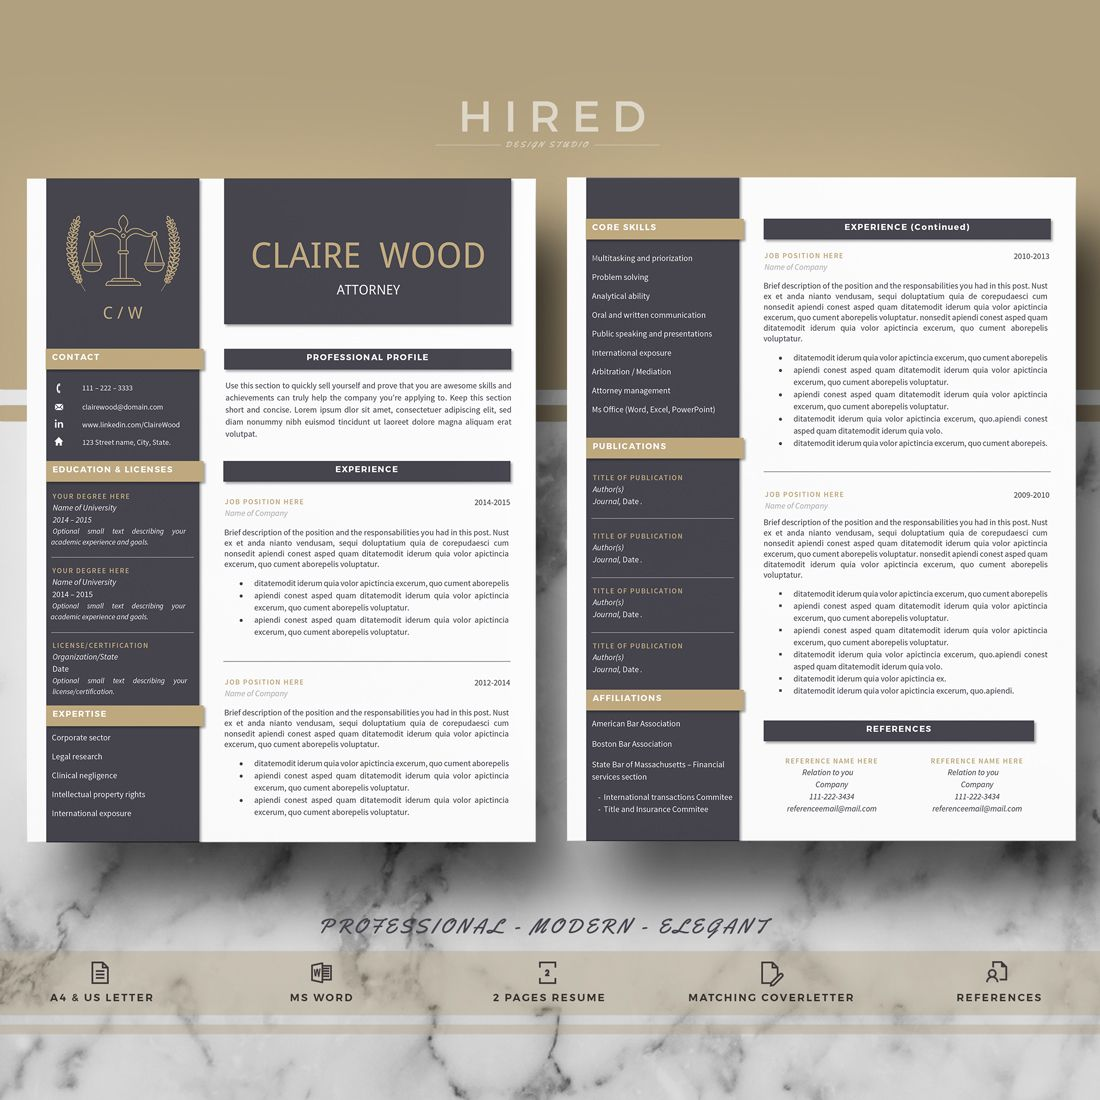 Resume template for Ms Word | Resume Templates for MS Word ...